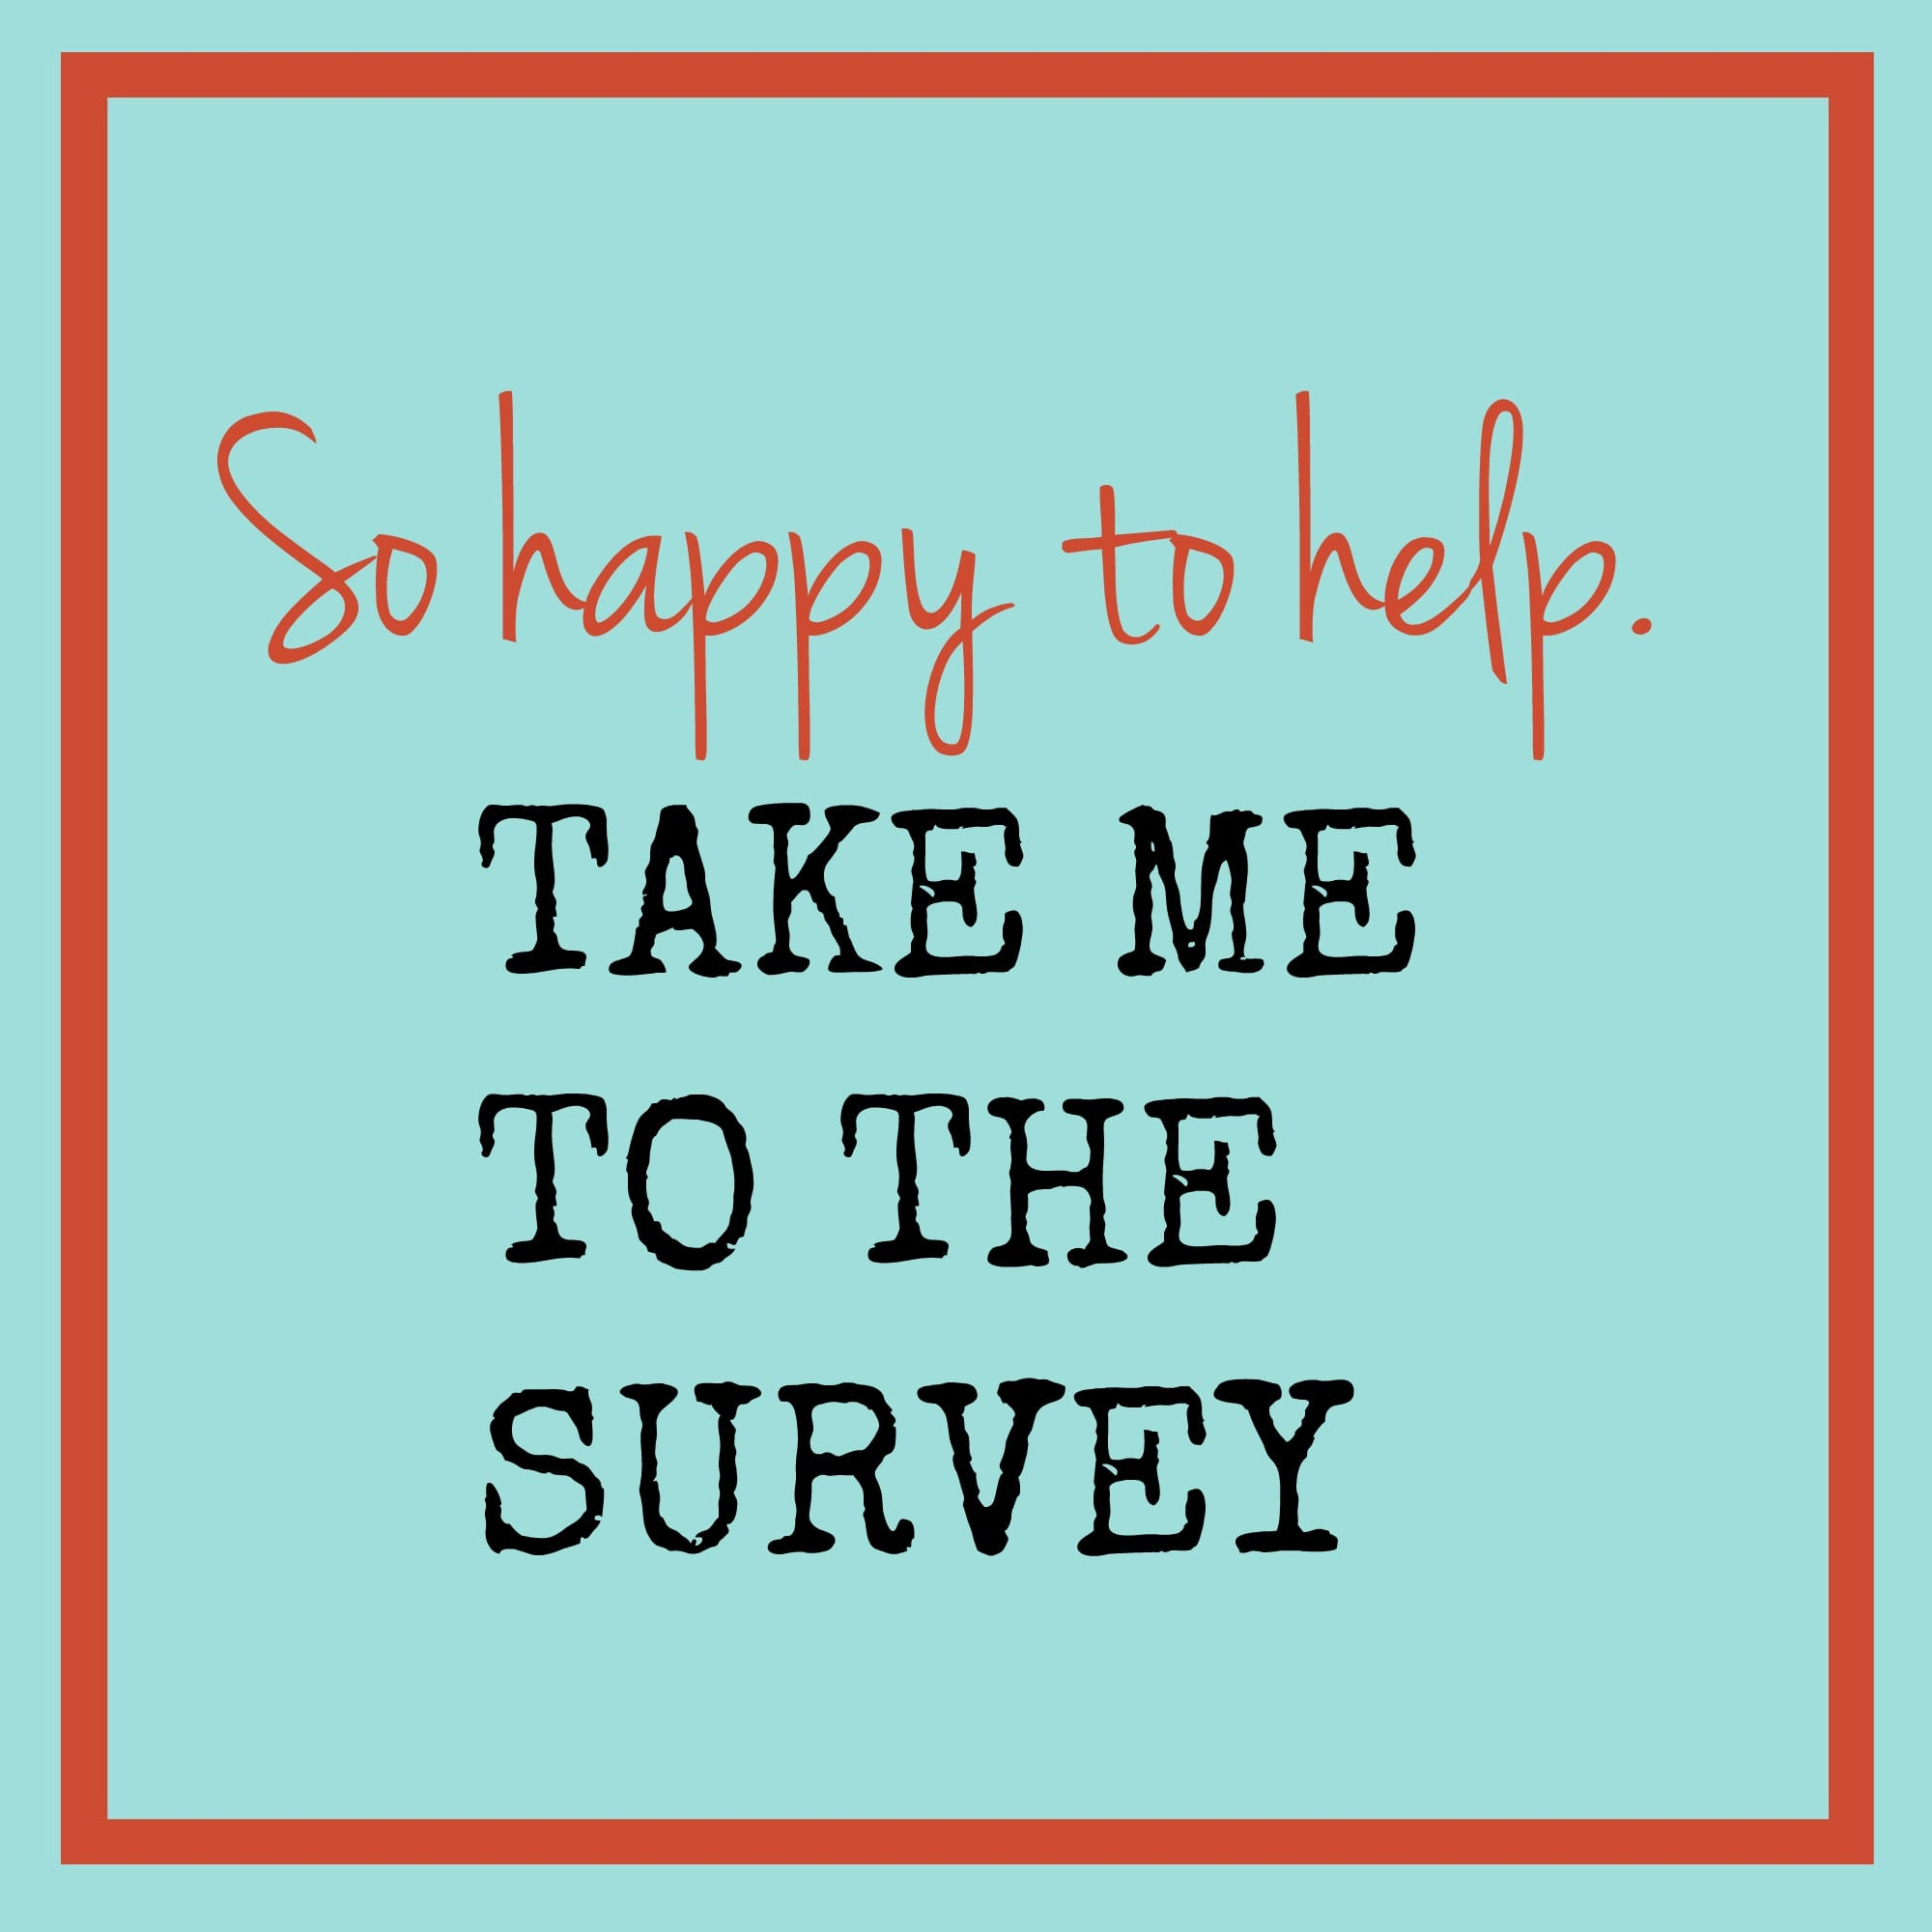 A Short Reader Survey and Exciting News to Share